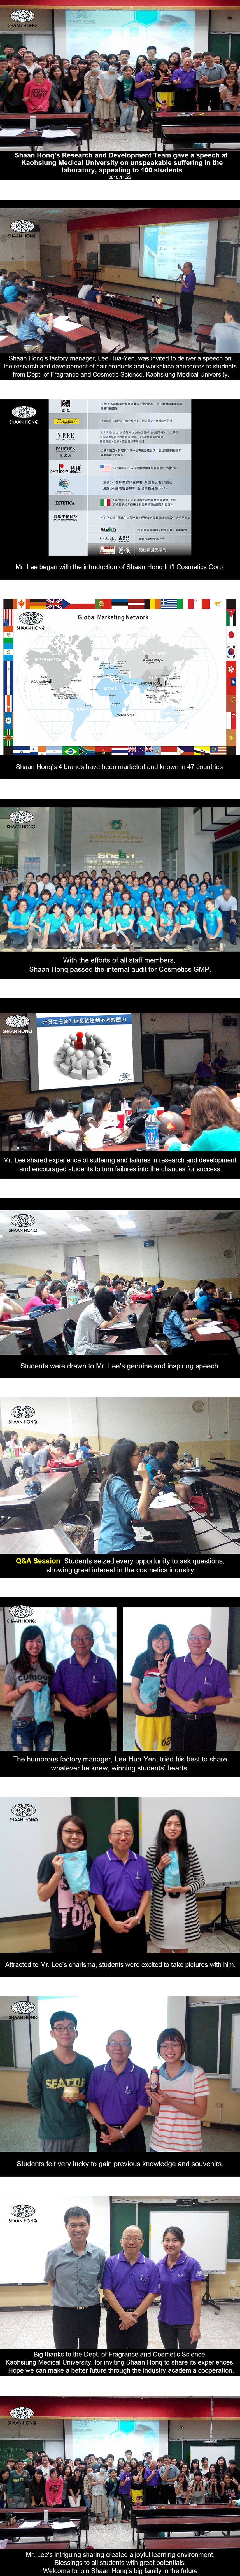 Shaanhonq's Research and Development Team gave a speech at  Kaohsiung Medical University on unspeakable suffering  in the laboratory appealing to 100 students